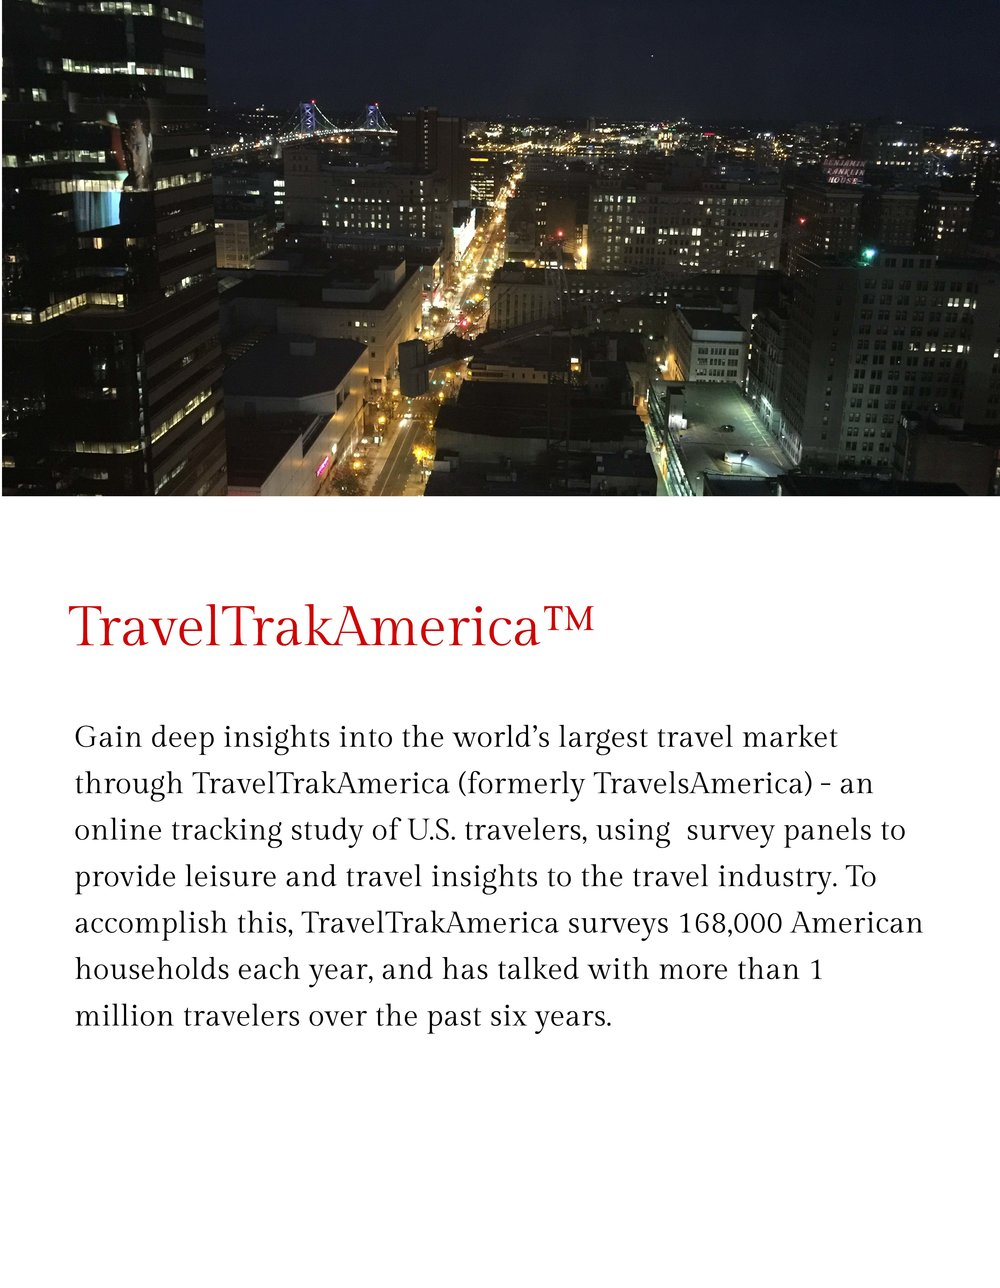 TravelTrakAmerica